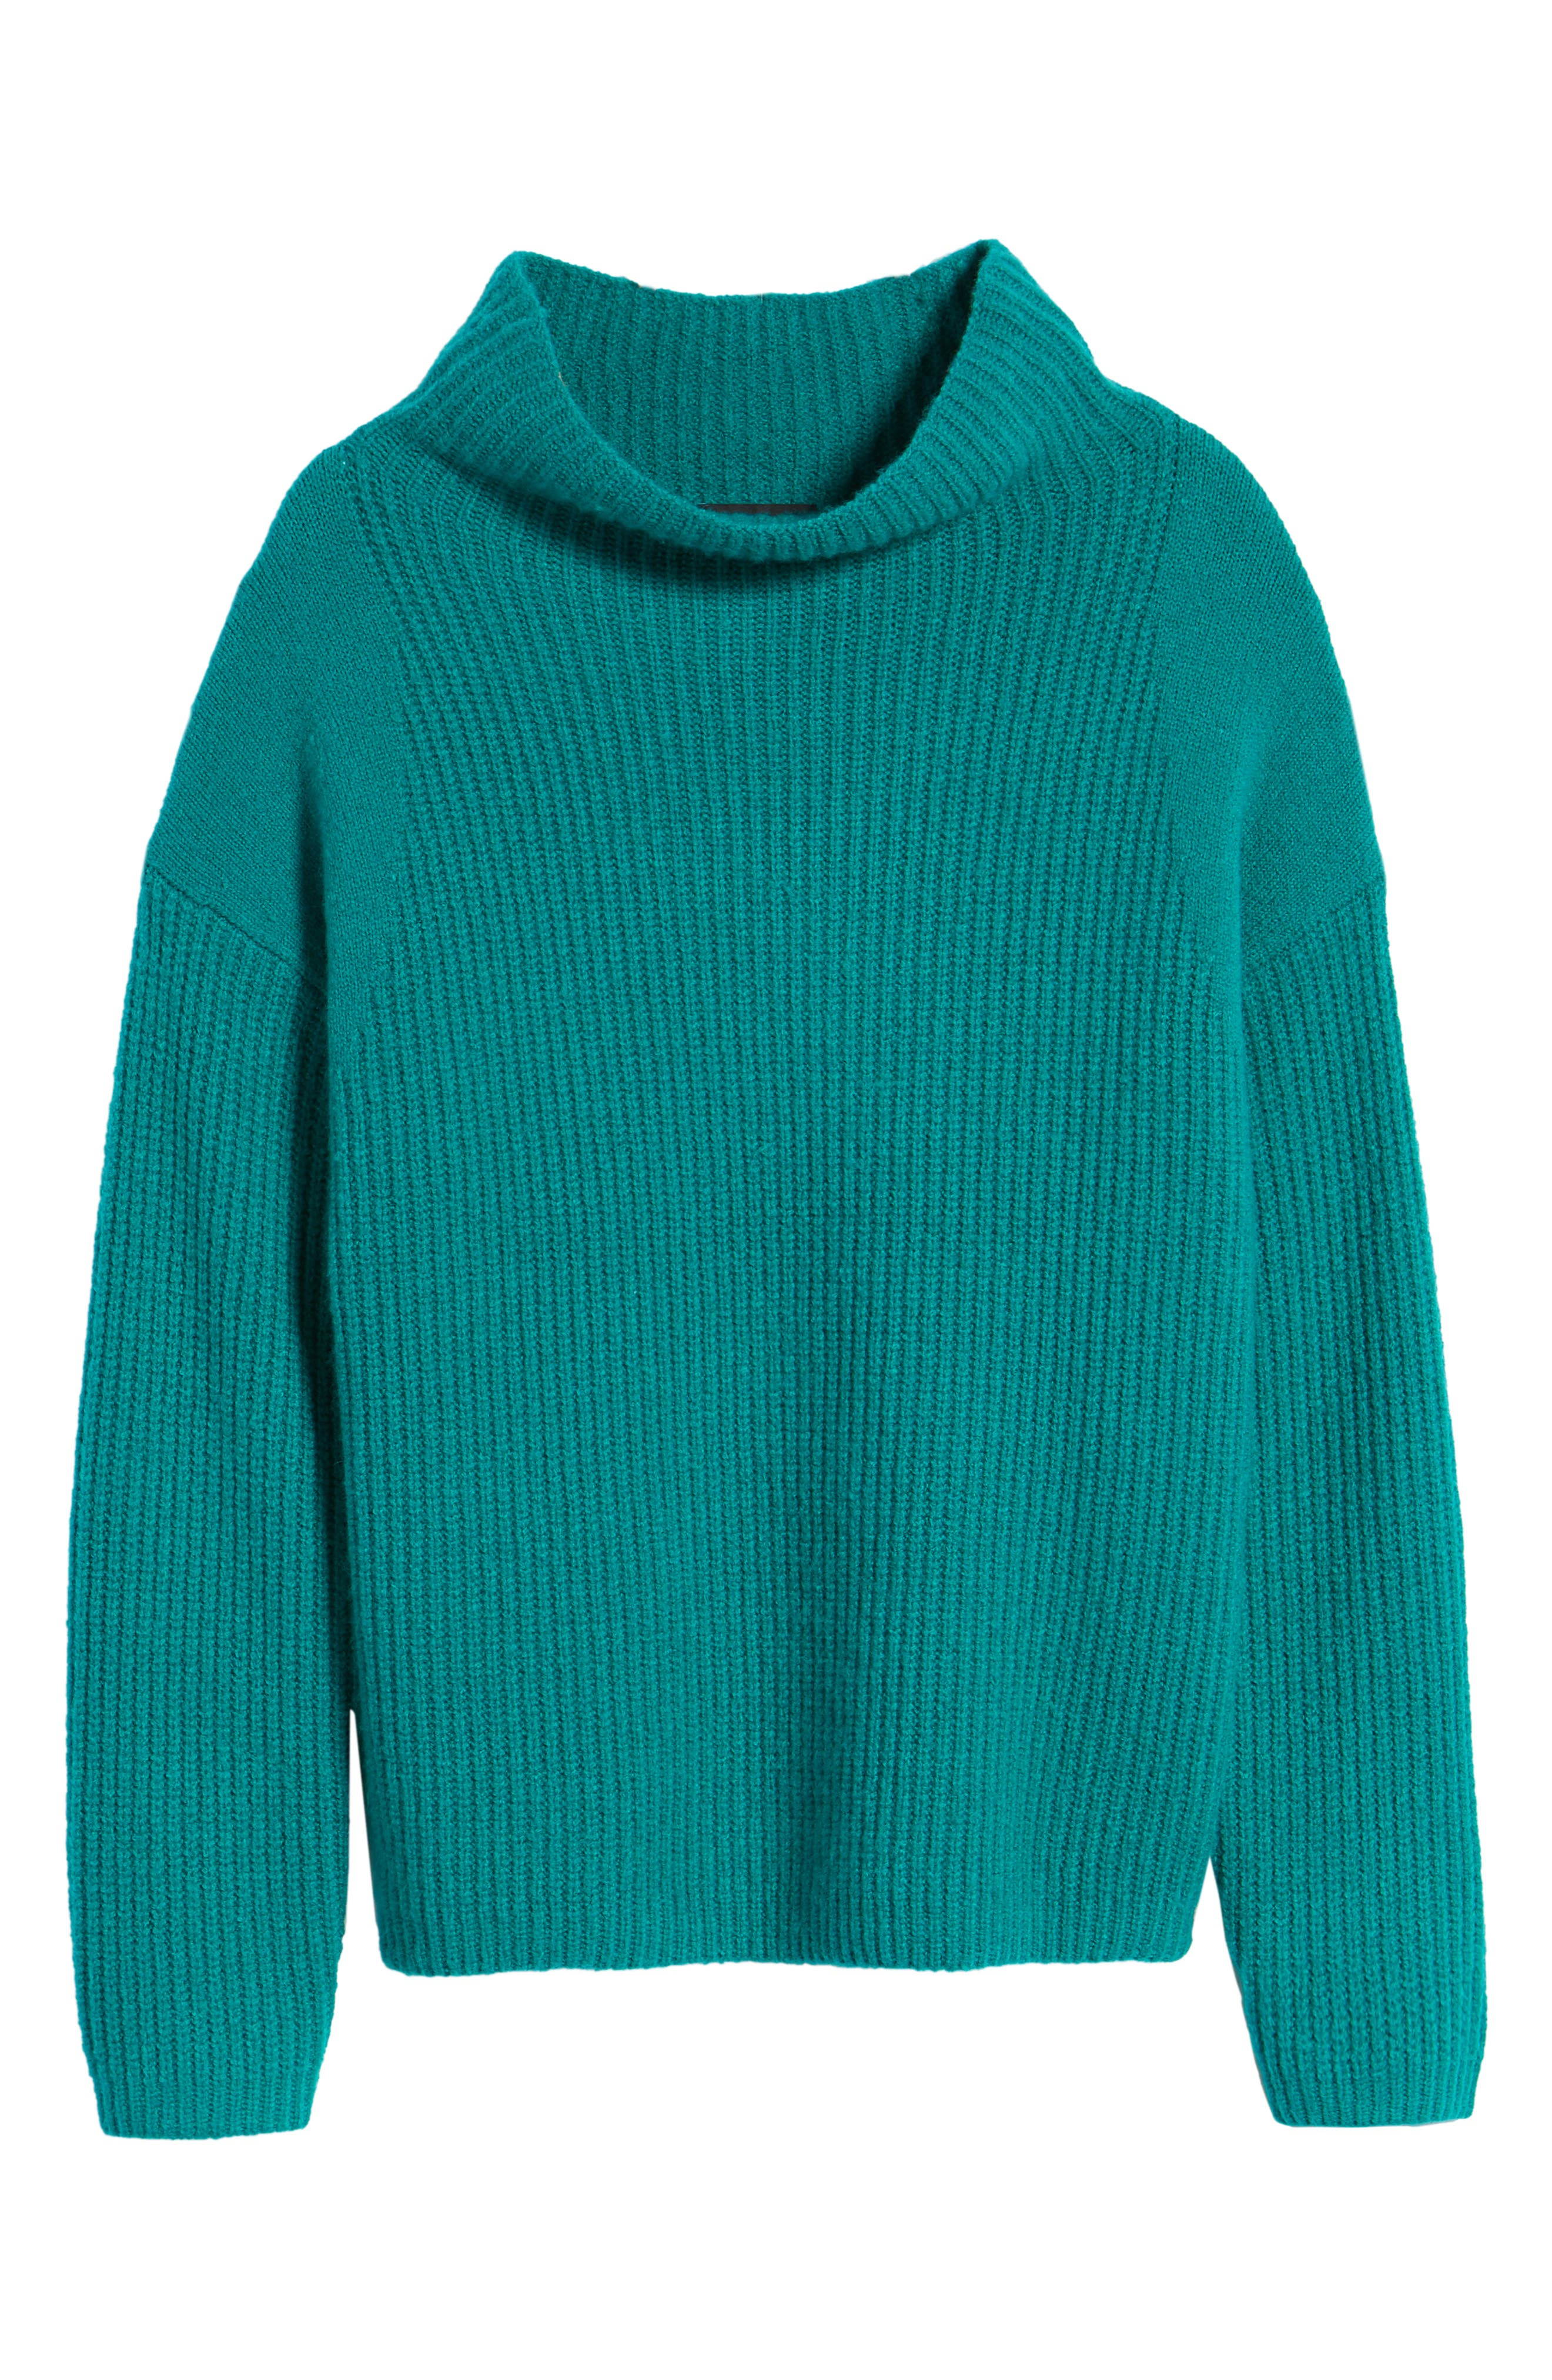 Rib Funnel Neck Sweater,                             Alternate thumbnail 7, color,                             Teal Sail